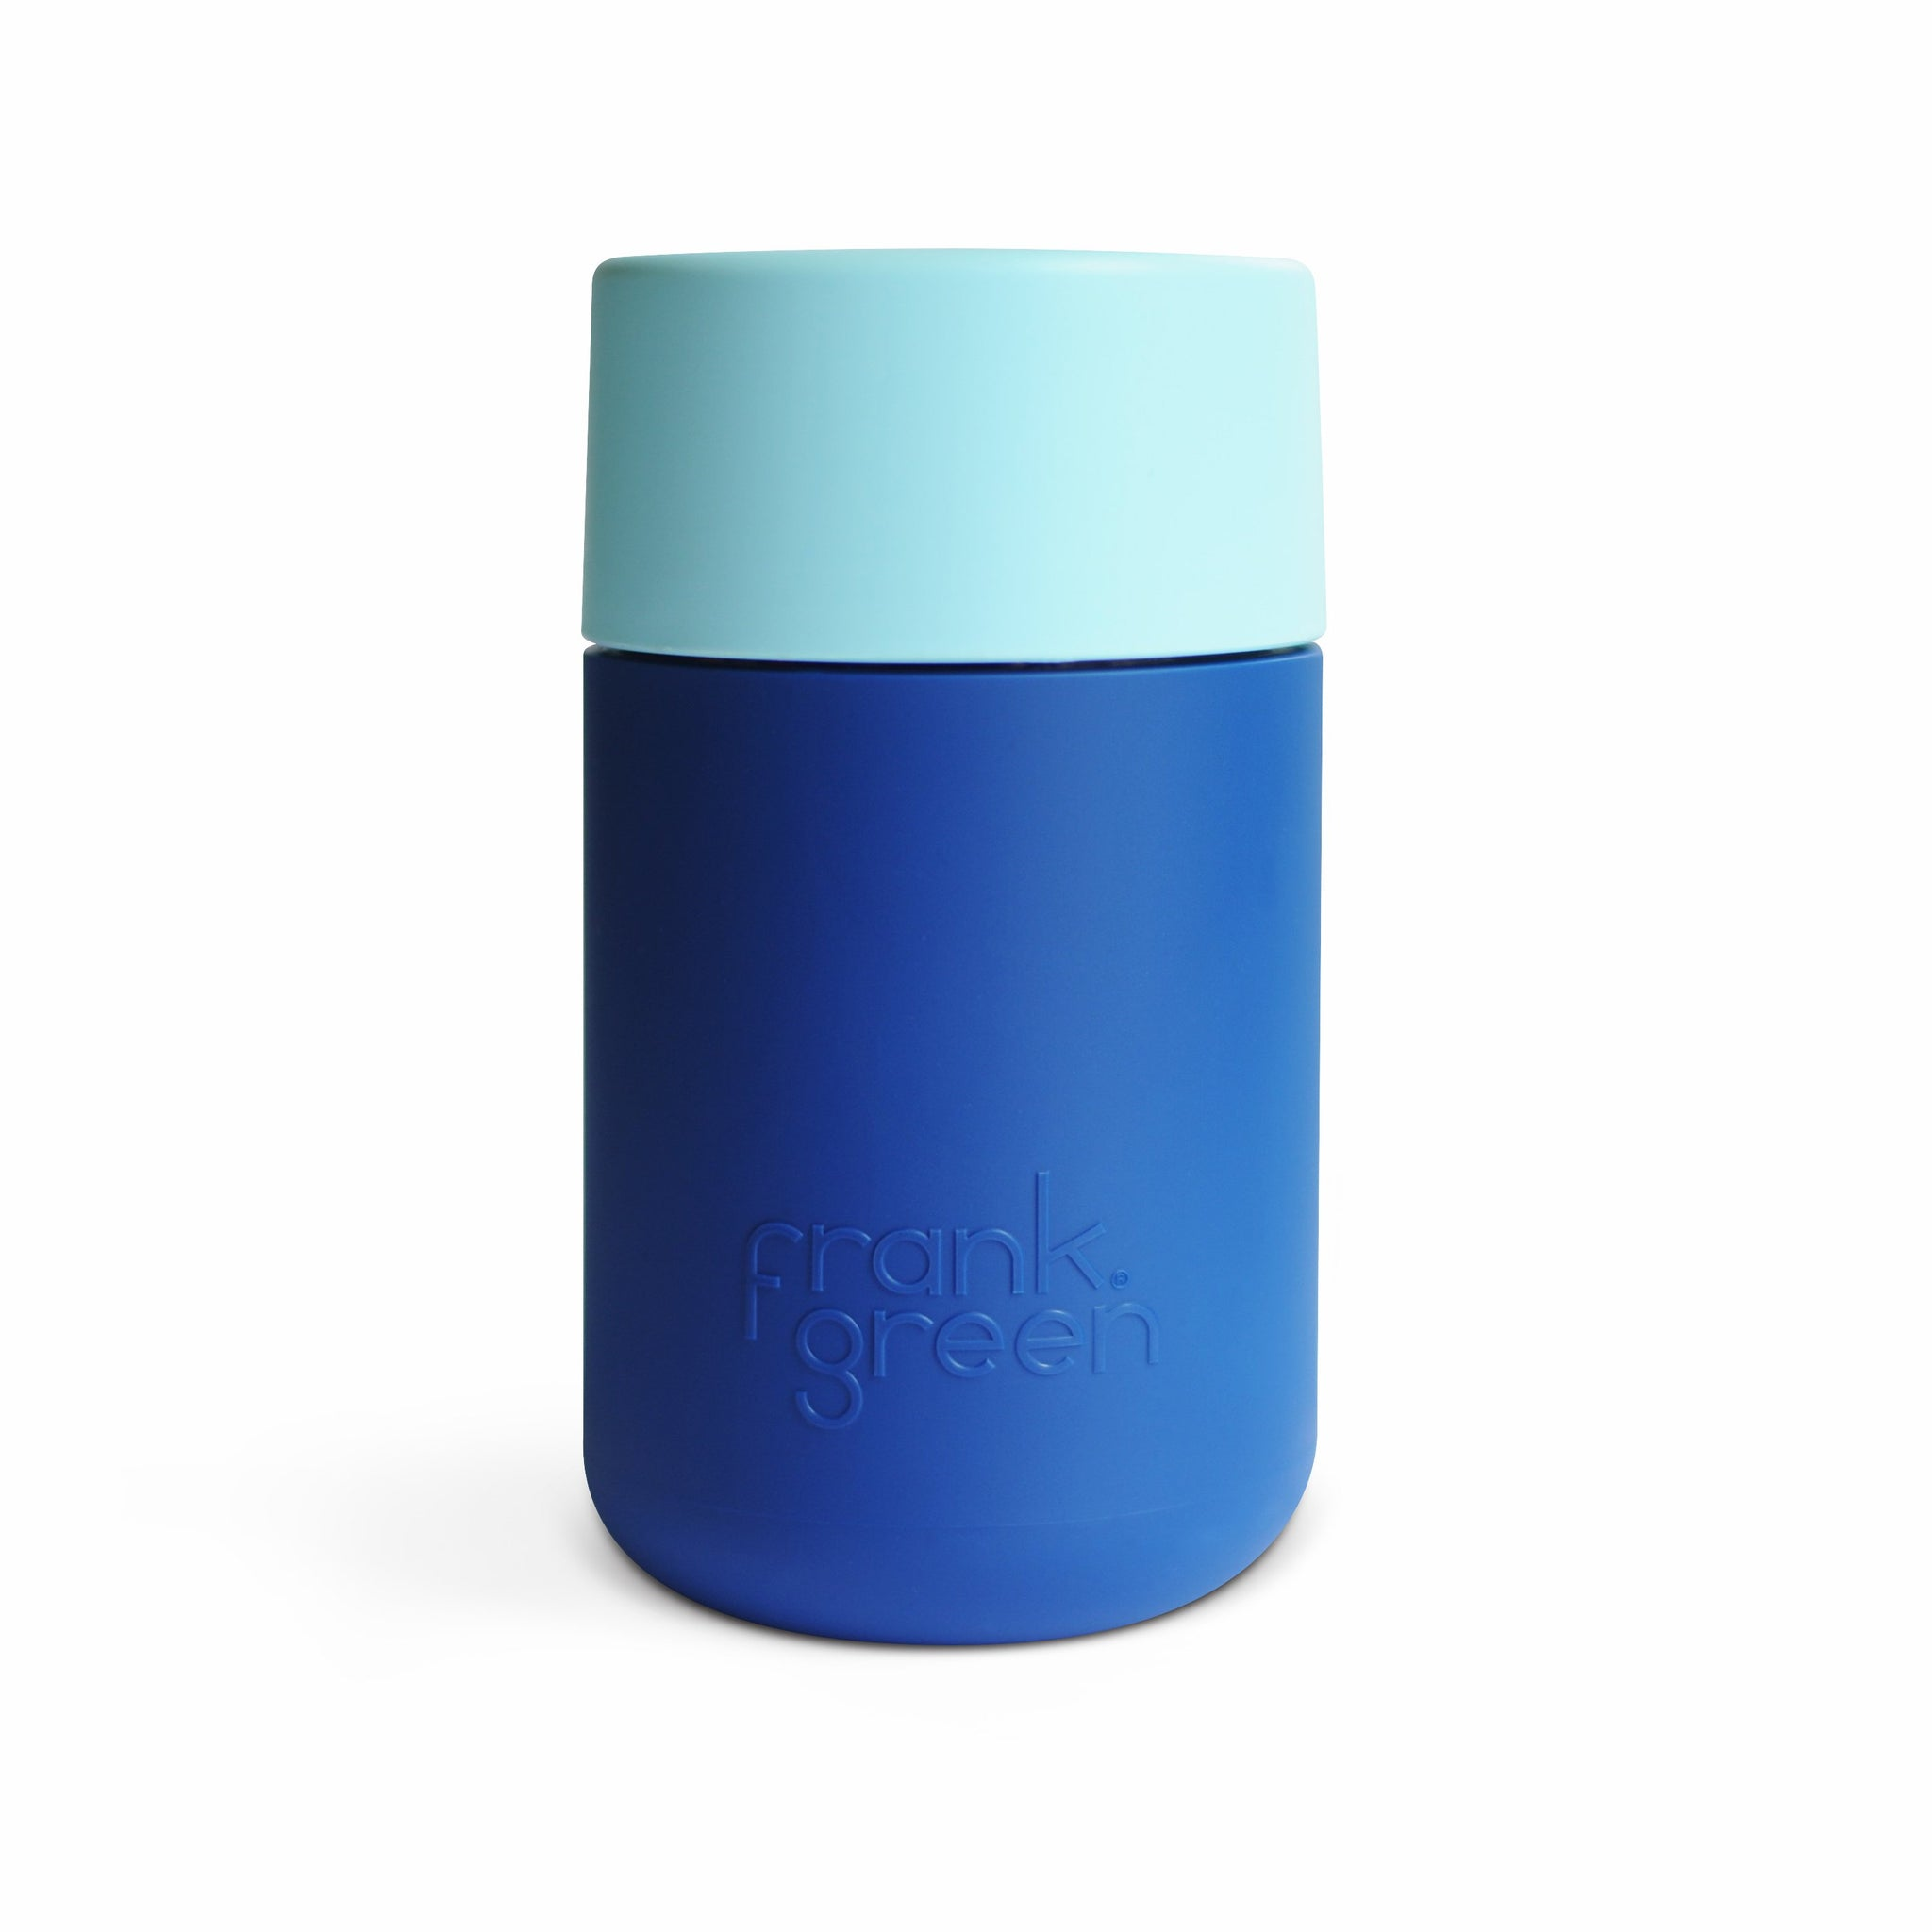 3a10576660f5 Frank Green - Smart Cup 12oz - Navy   Light Aqua Coffee Cup - Branched